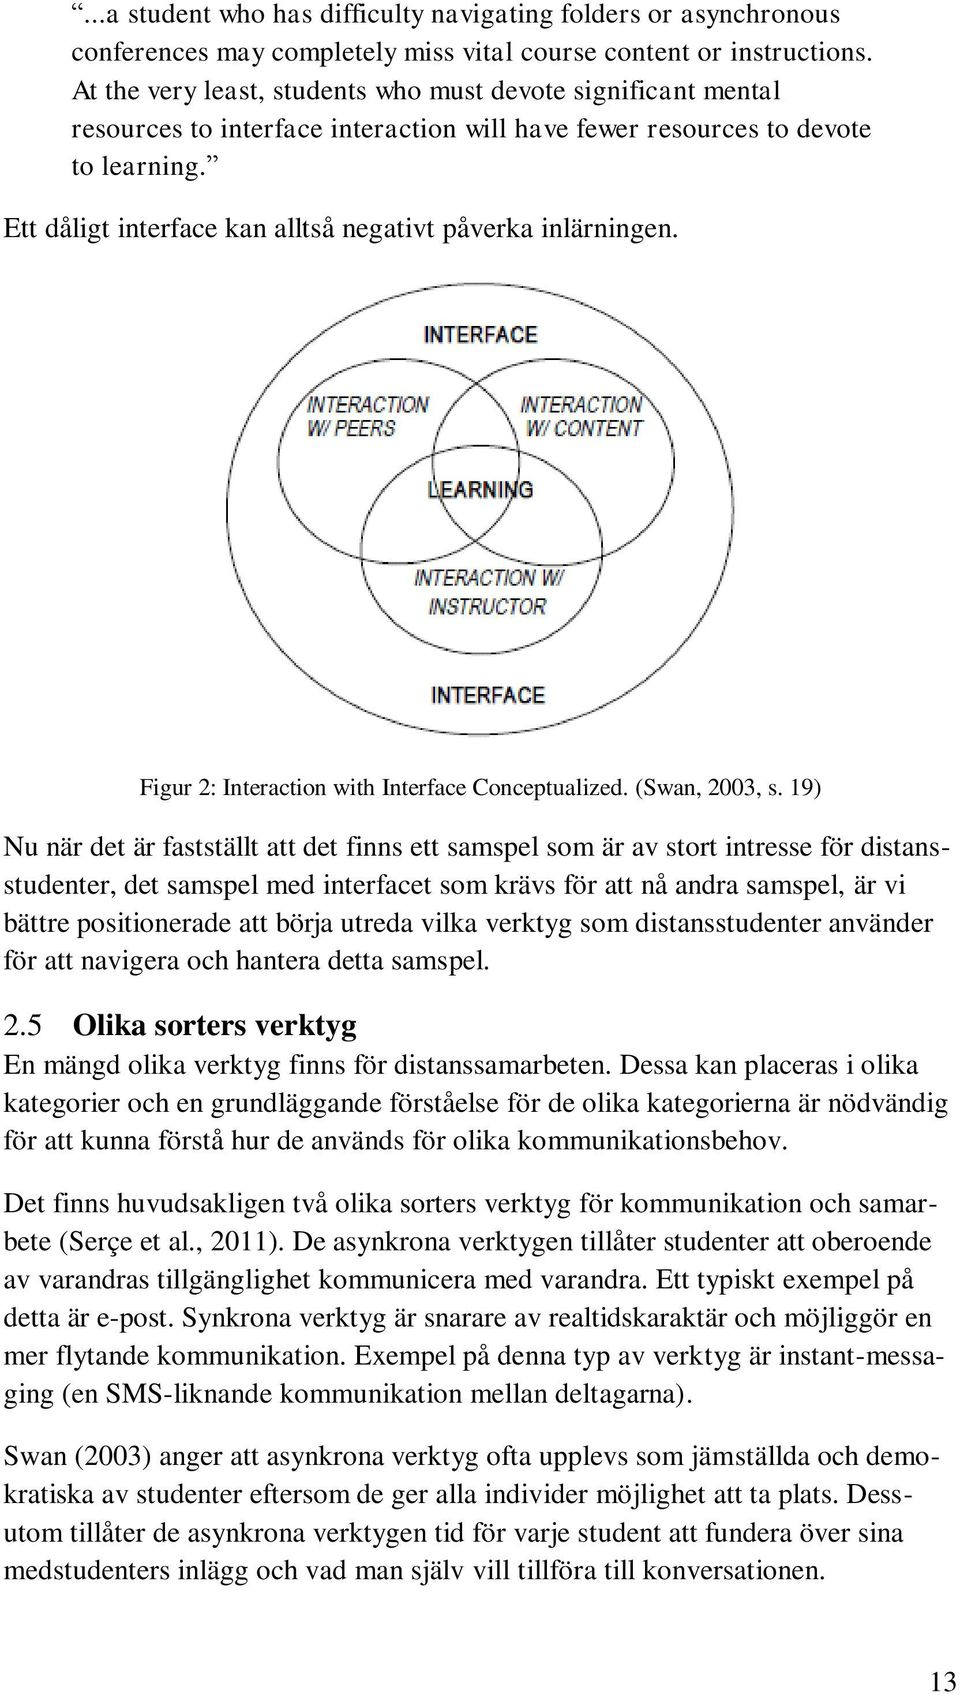 Ett dåligt interface kan alltså negativt påverka inlärningen. Figur 2: Interaction with Interface Conceptualized. (Swan, 2003, s.